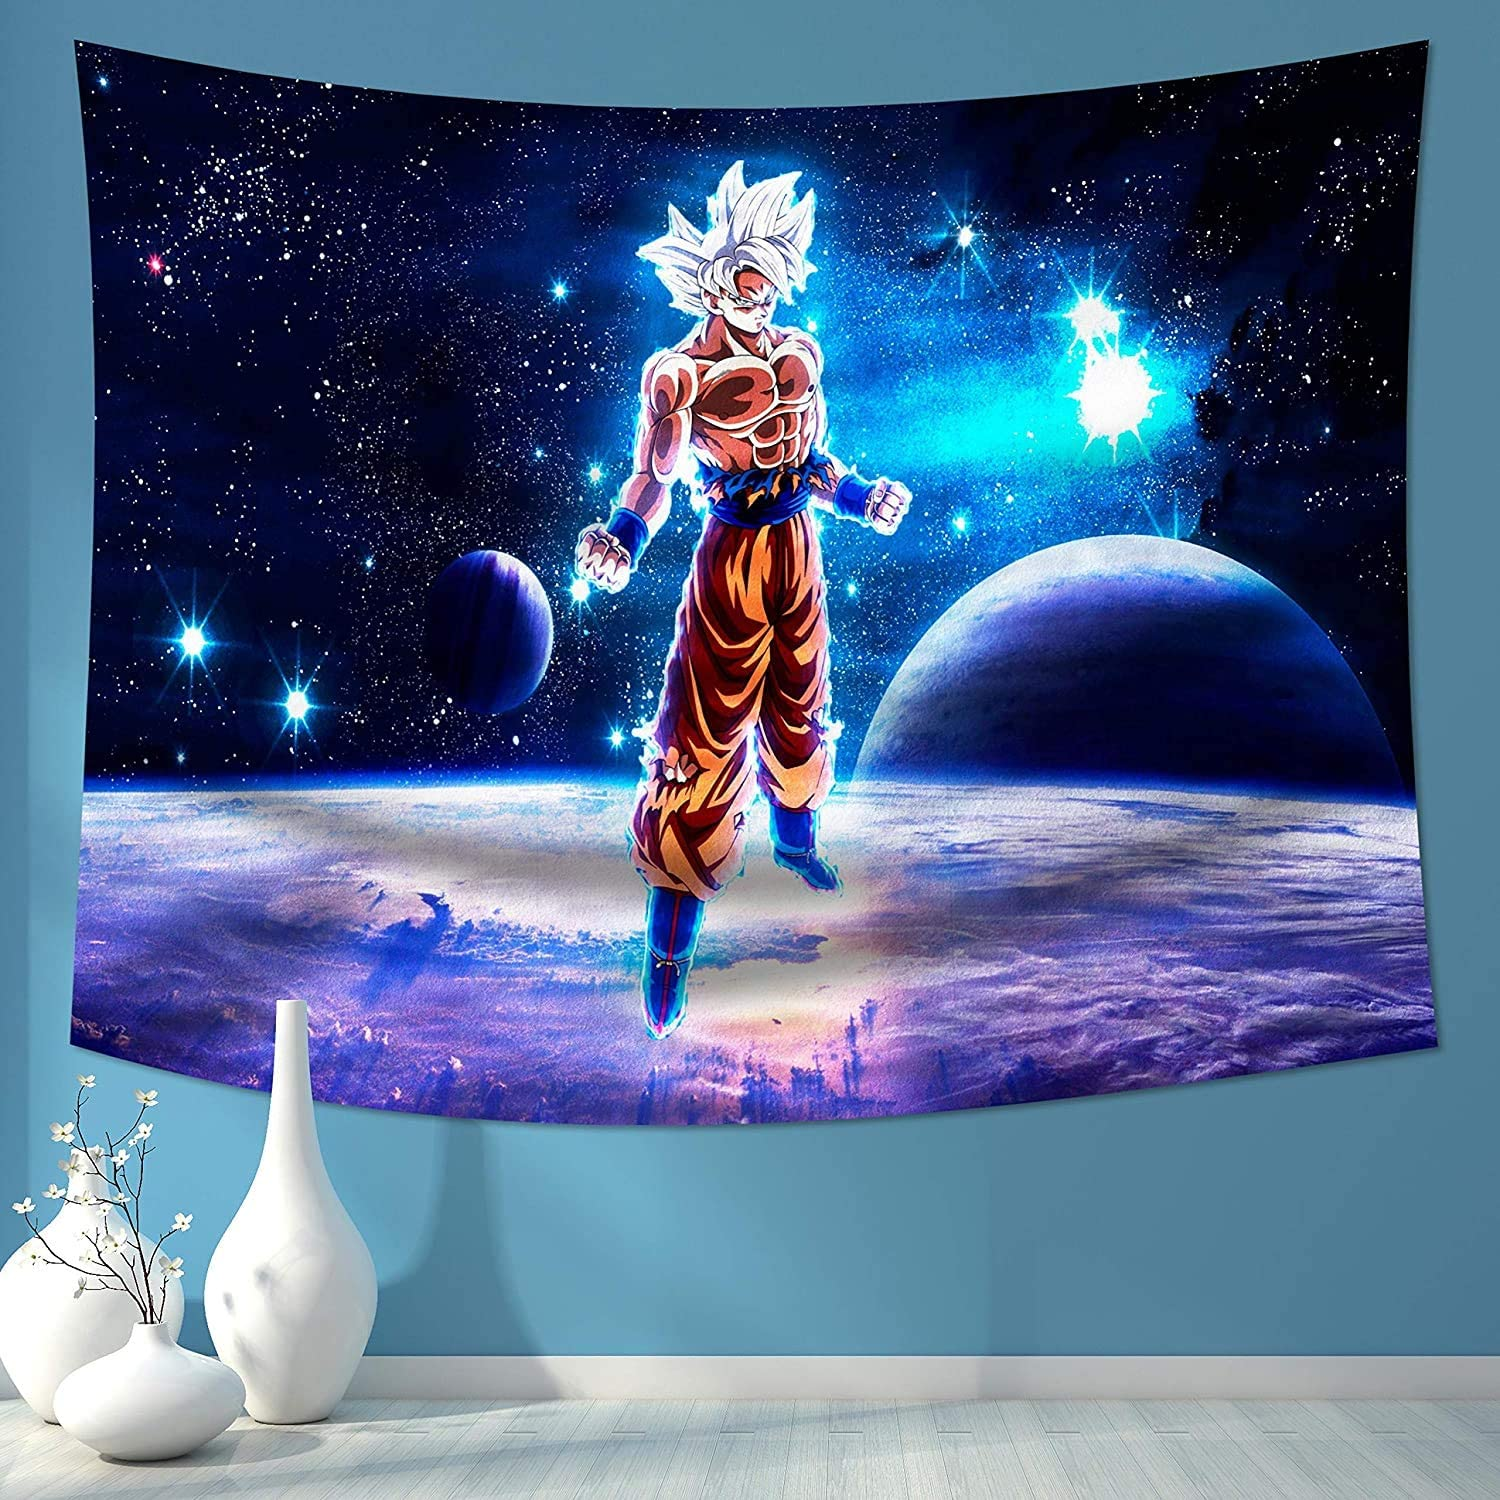 Yaweya Tapestry Anime Tapestry Wall Hanging for Anime Gifts Boys Bedroom Living Room 50x60in (Dragon_Ball_z Tapestry 3, 50x60in)